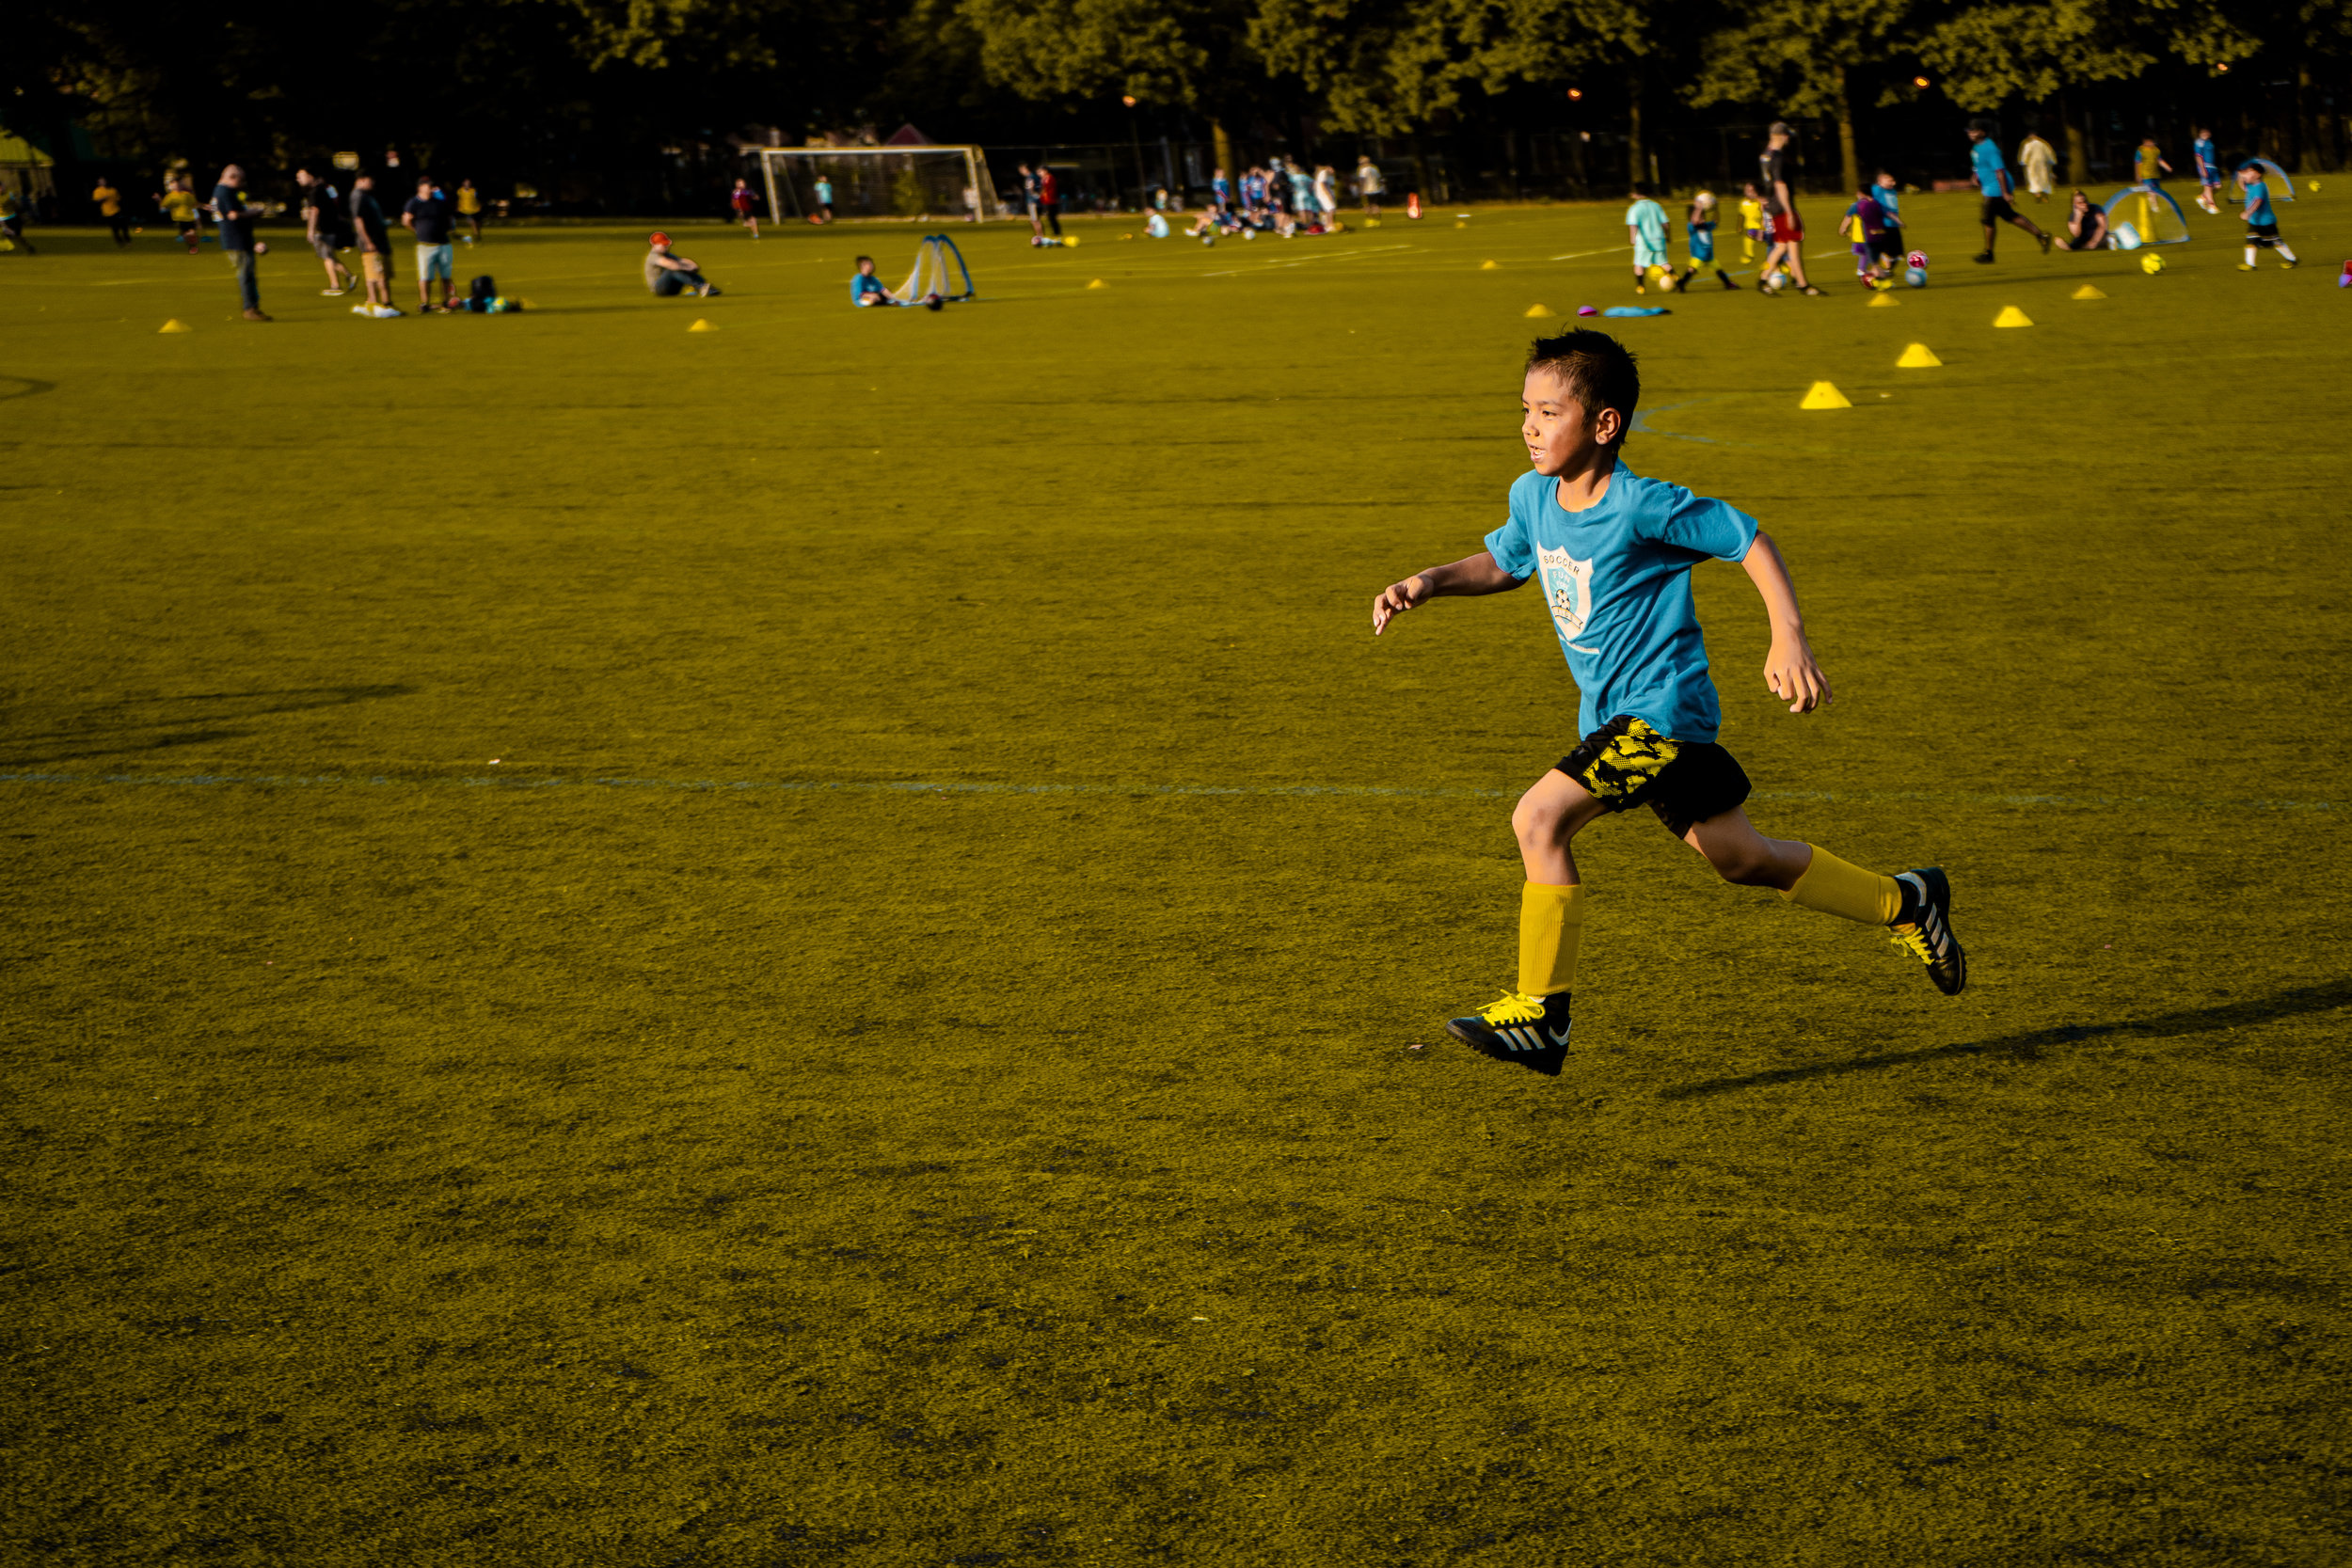 BOYS SOCCER - Our Boys soccer programs are our premier team options for players ready for travel soccer.